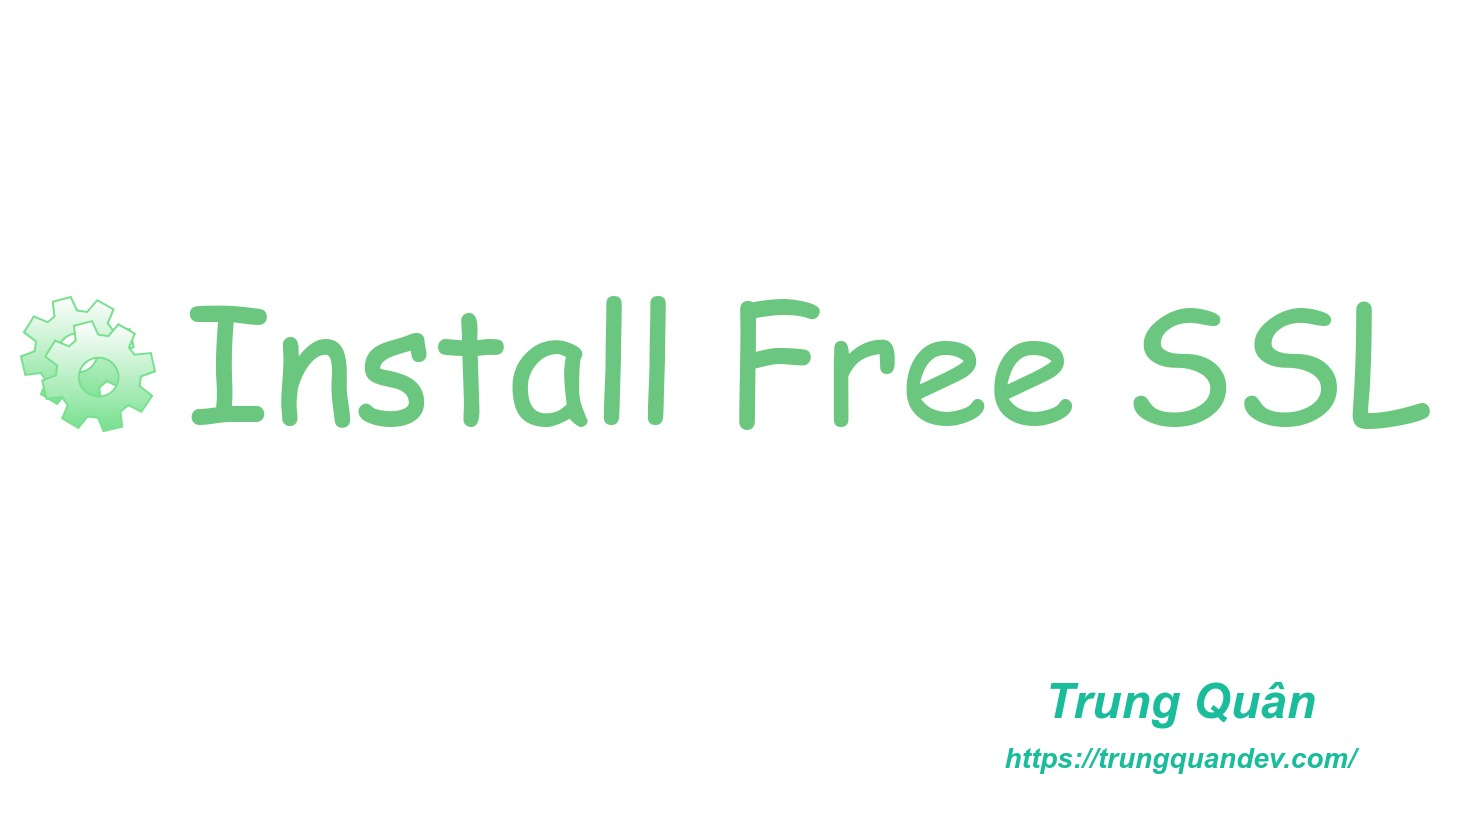 install-manual-ssl-free-for-website-trungquandev